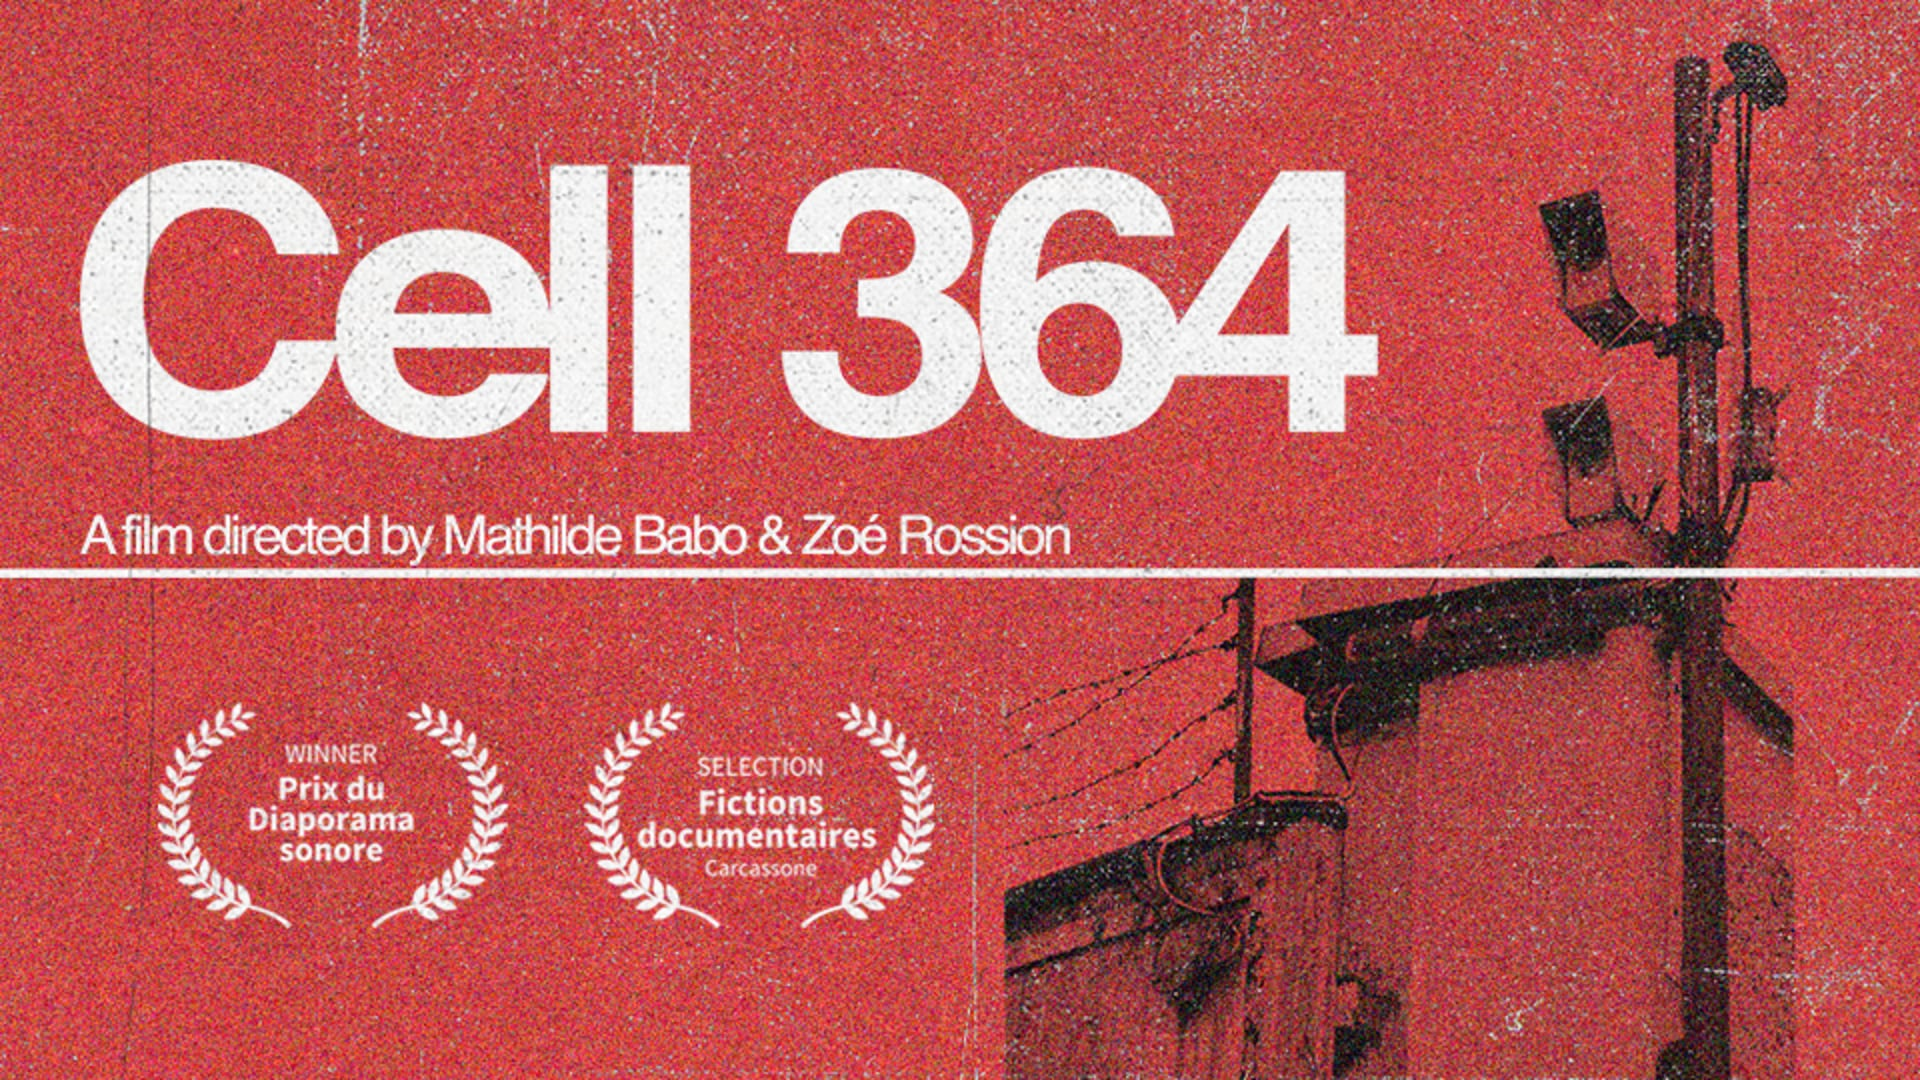 CELL 364 by Zoé Rossion & Mathilde Babo - Trailer